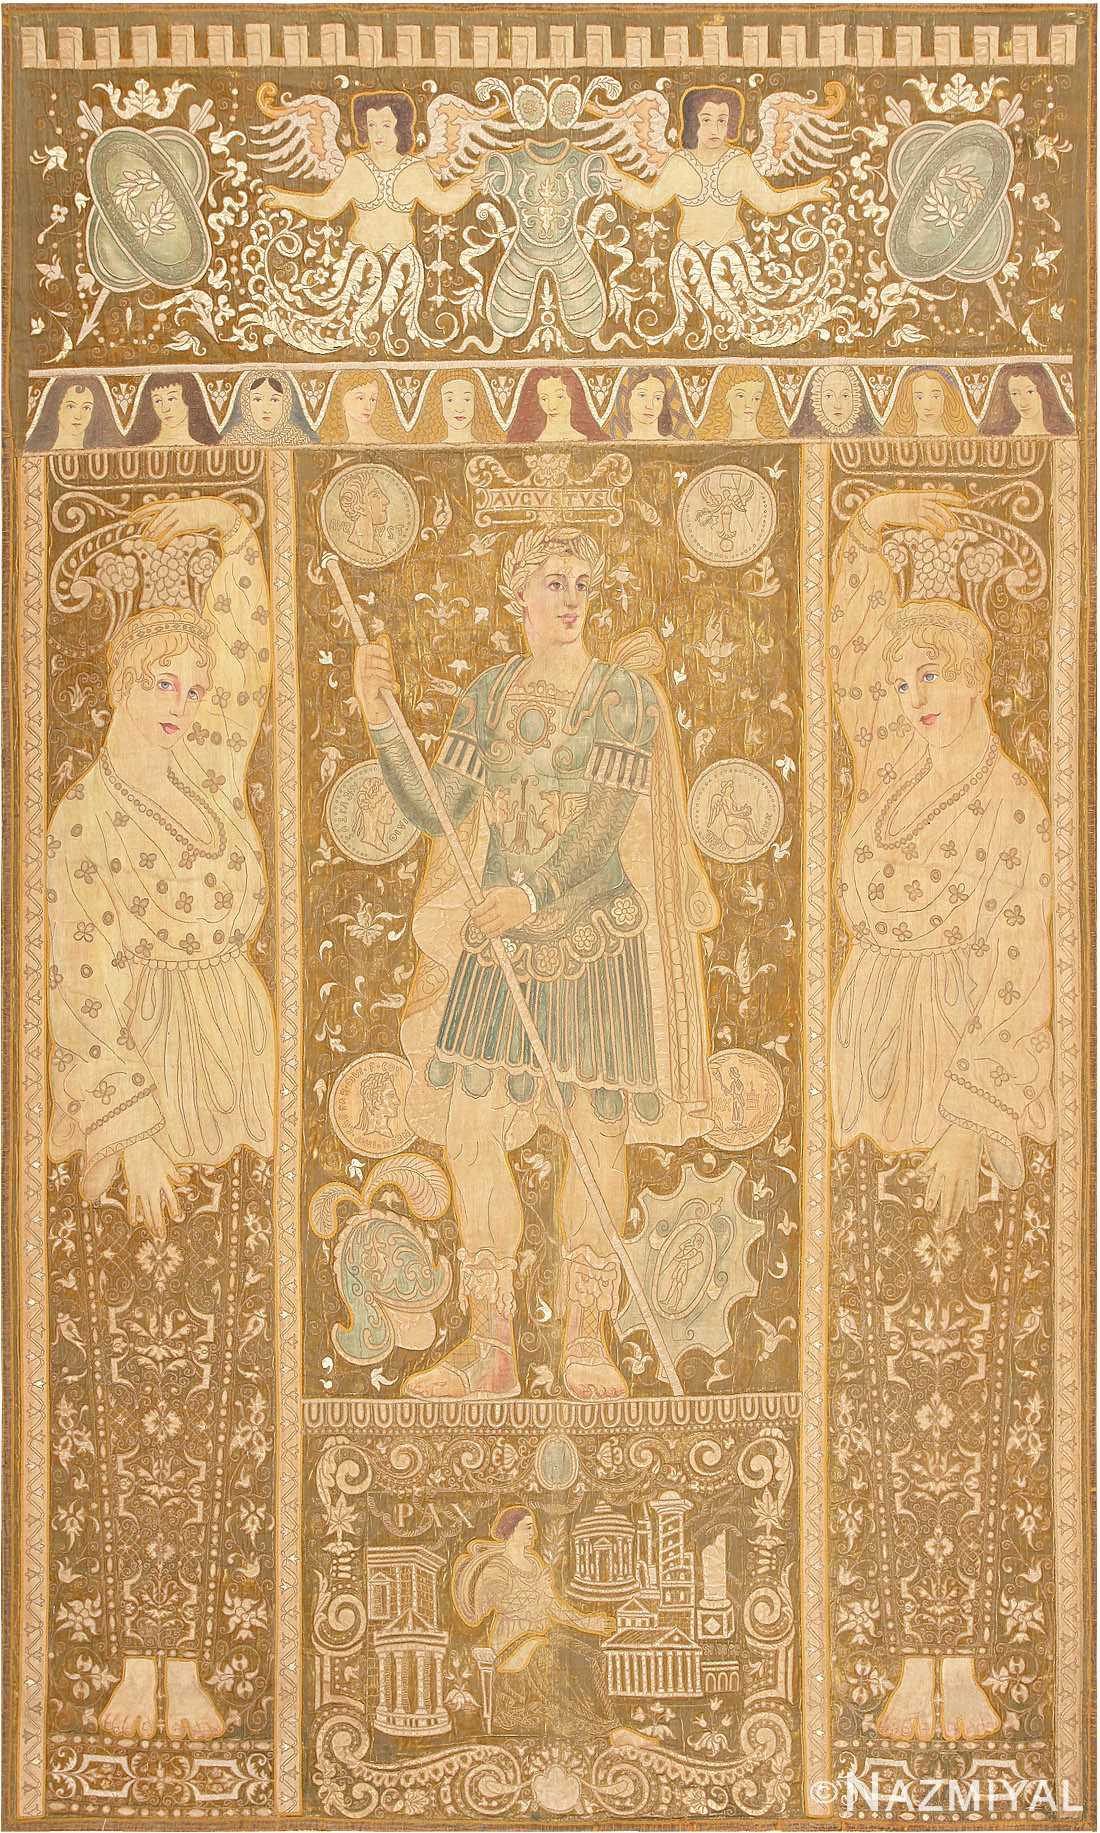 Beautiful Antique Italian Tapestry depicting Caesar Augustus Roman Emperor Octavian 47325 Large Image by Nazmiyal